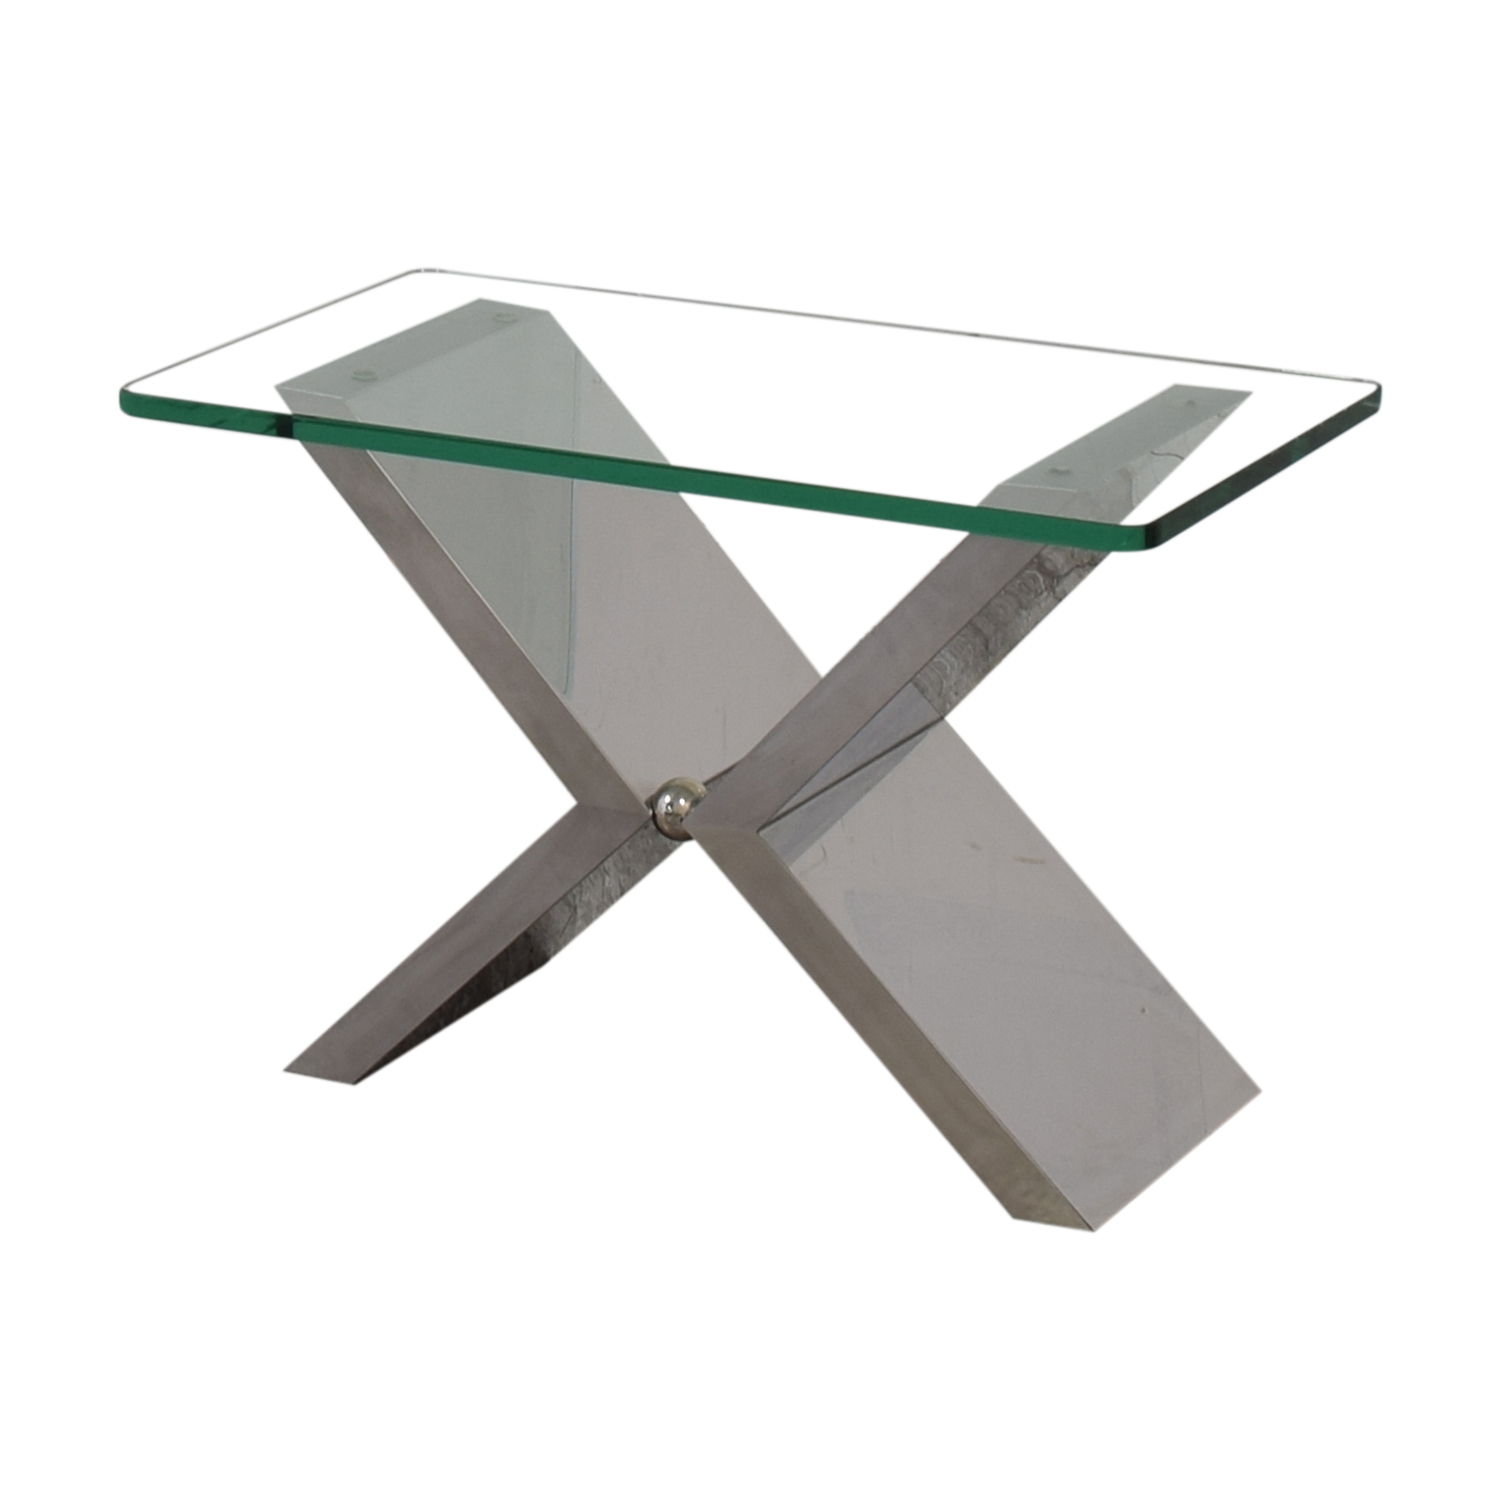 J Robert Scott Modern Glass and Steel Side Table / Accent Tables